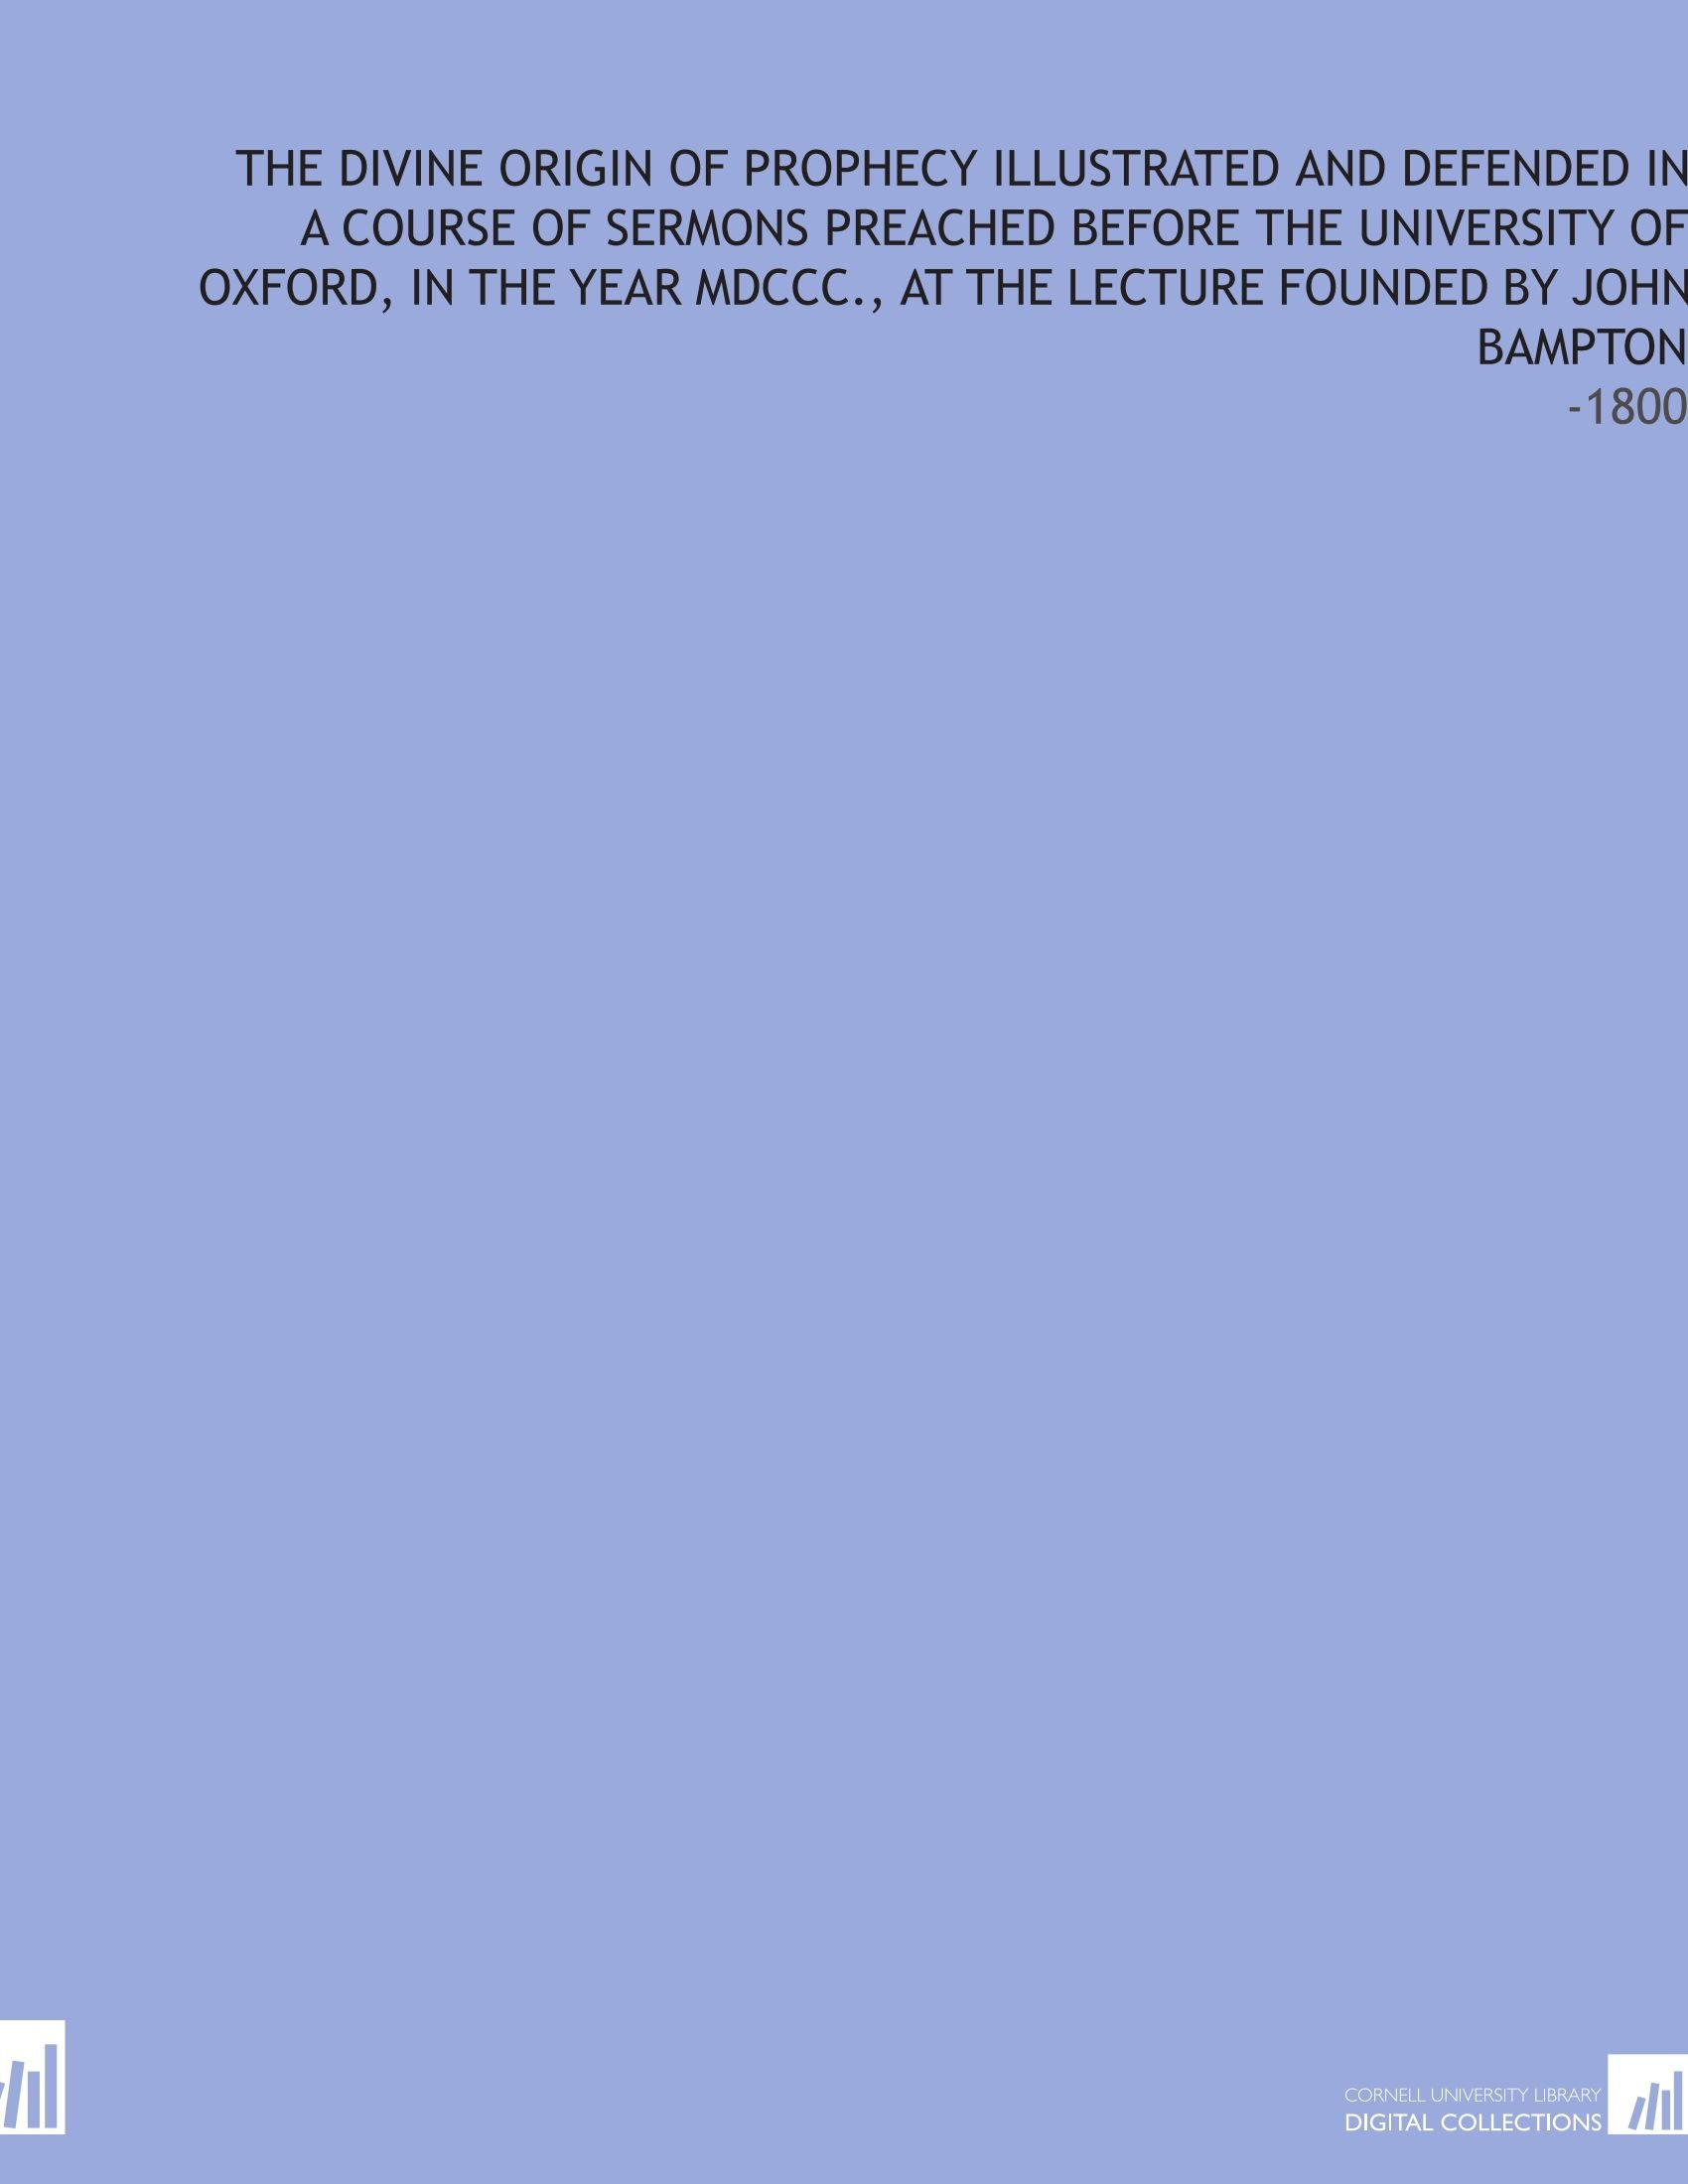 Download The Divine Origin of Prophecy Illustrated and Defended in a Course of Sermons Preached Before the University of Oxford, in the Year MDCCC., at the Lecture Founded by John Bampton: -1800 ebook